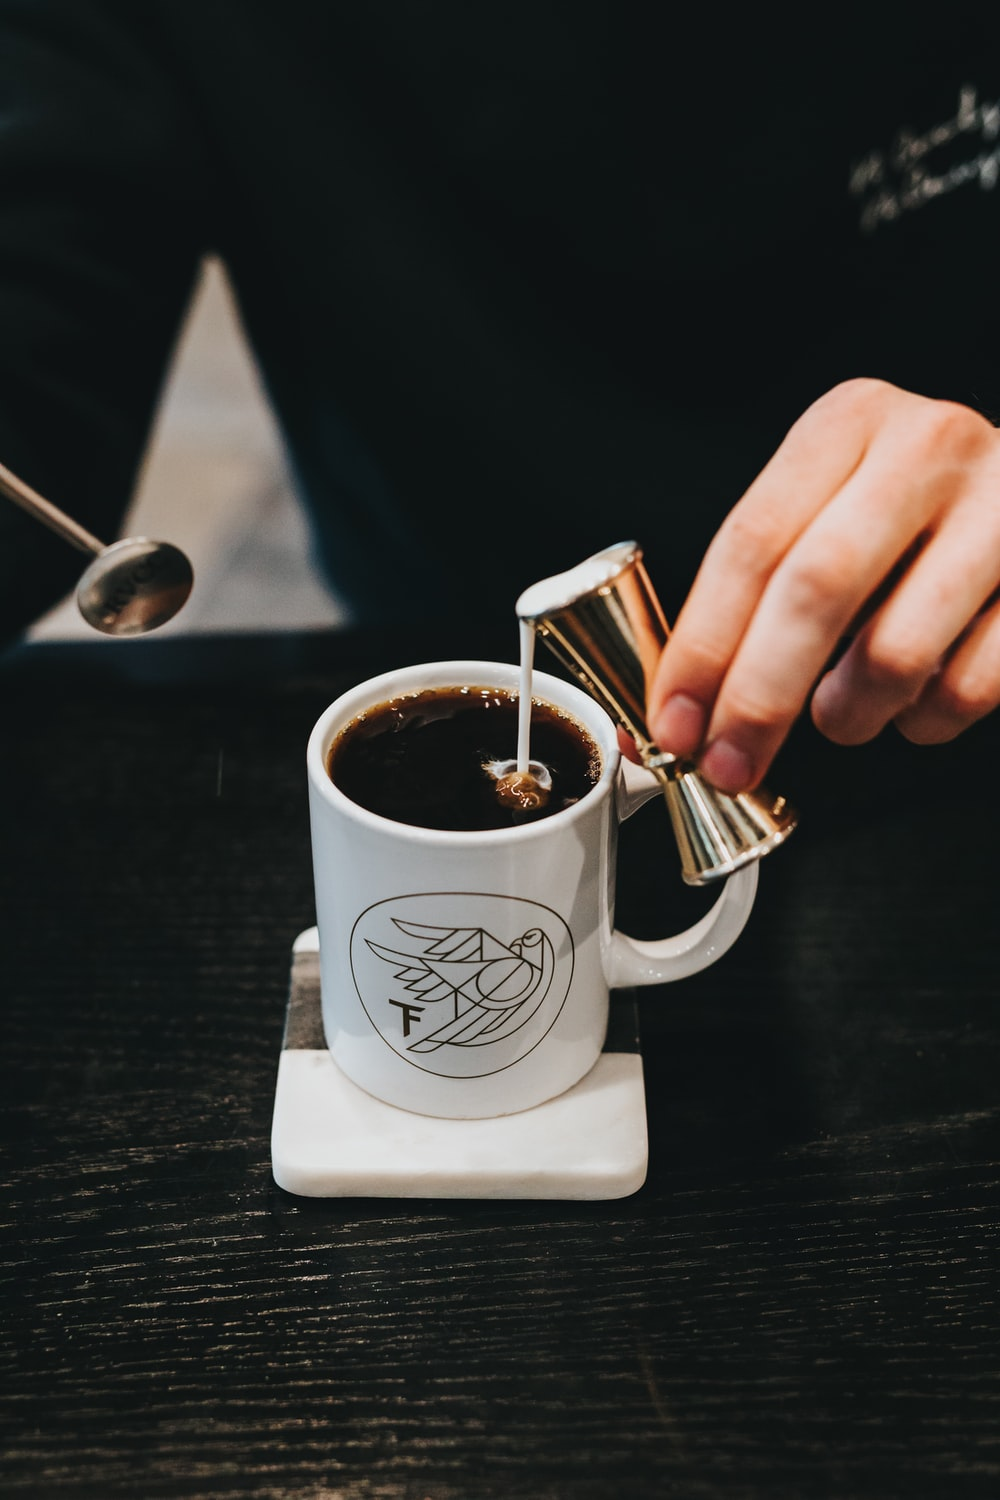 milk pouring on coffee